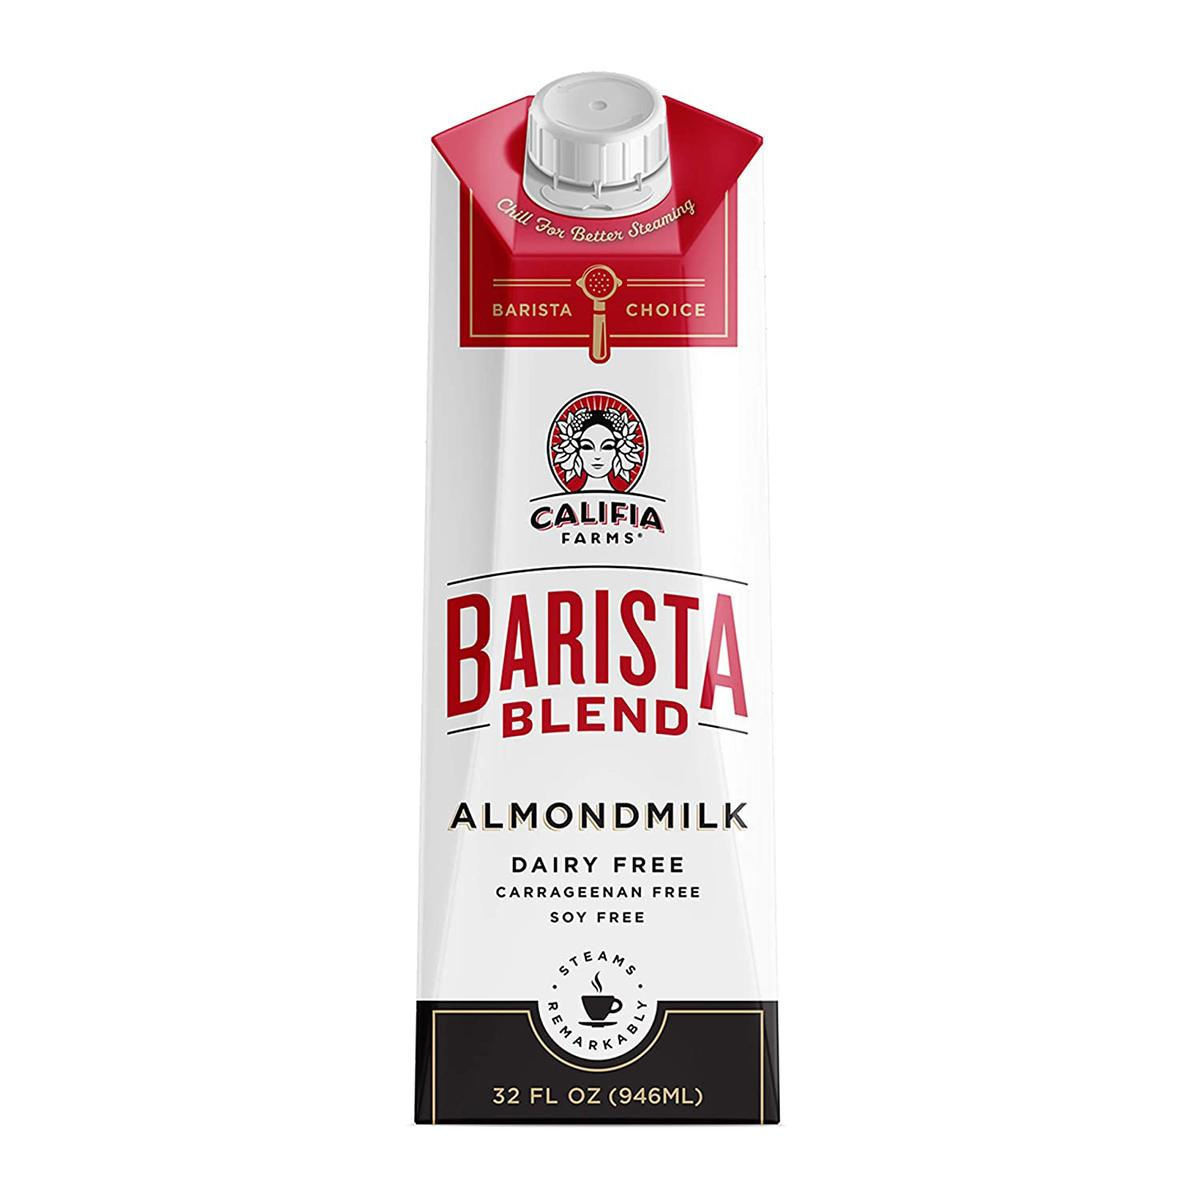 6 Califia Farms Almond Milk for $13.97 Shipped